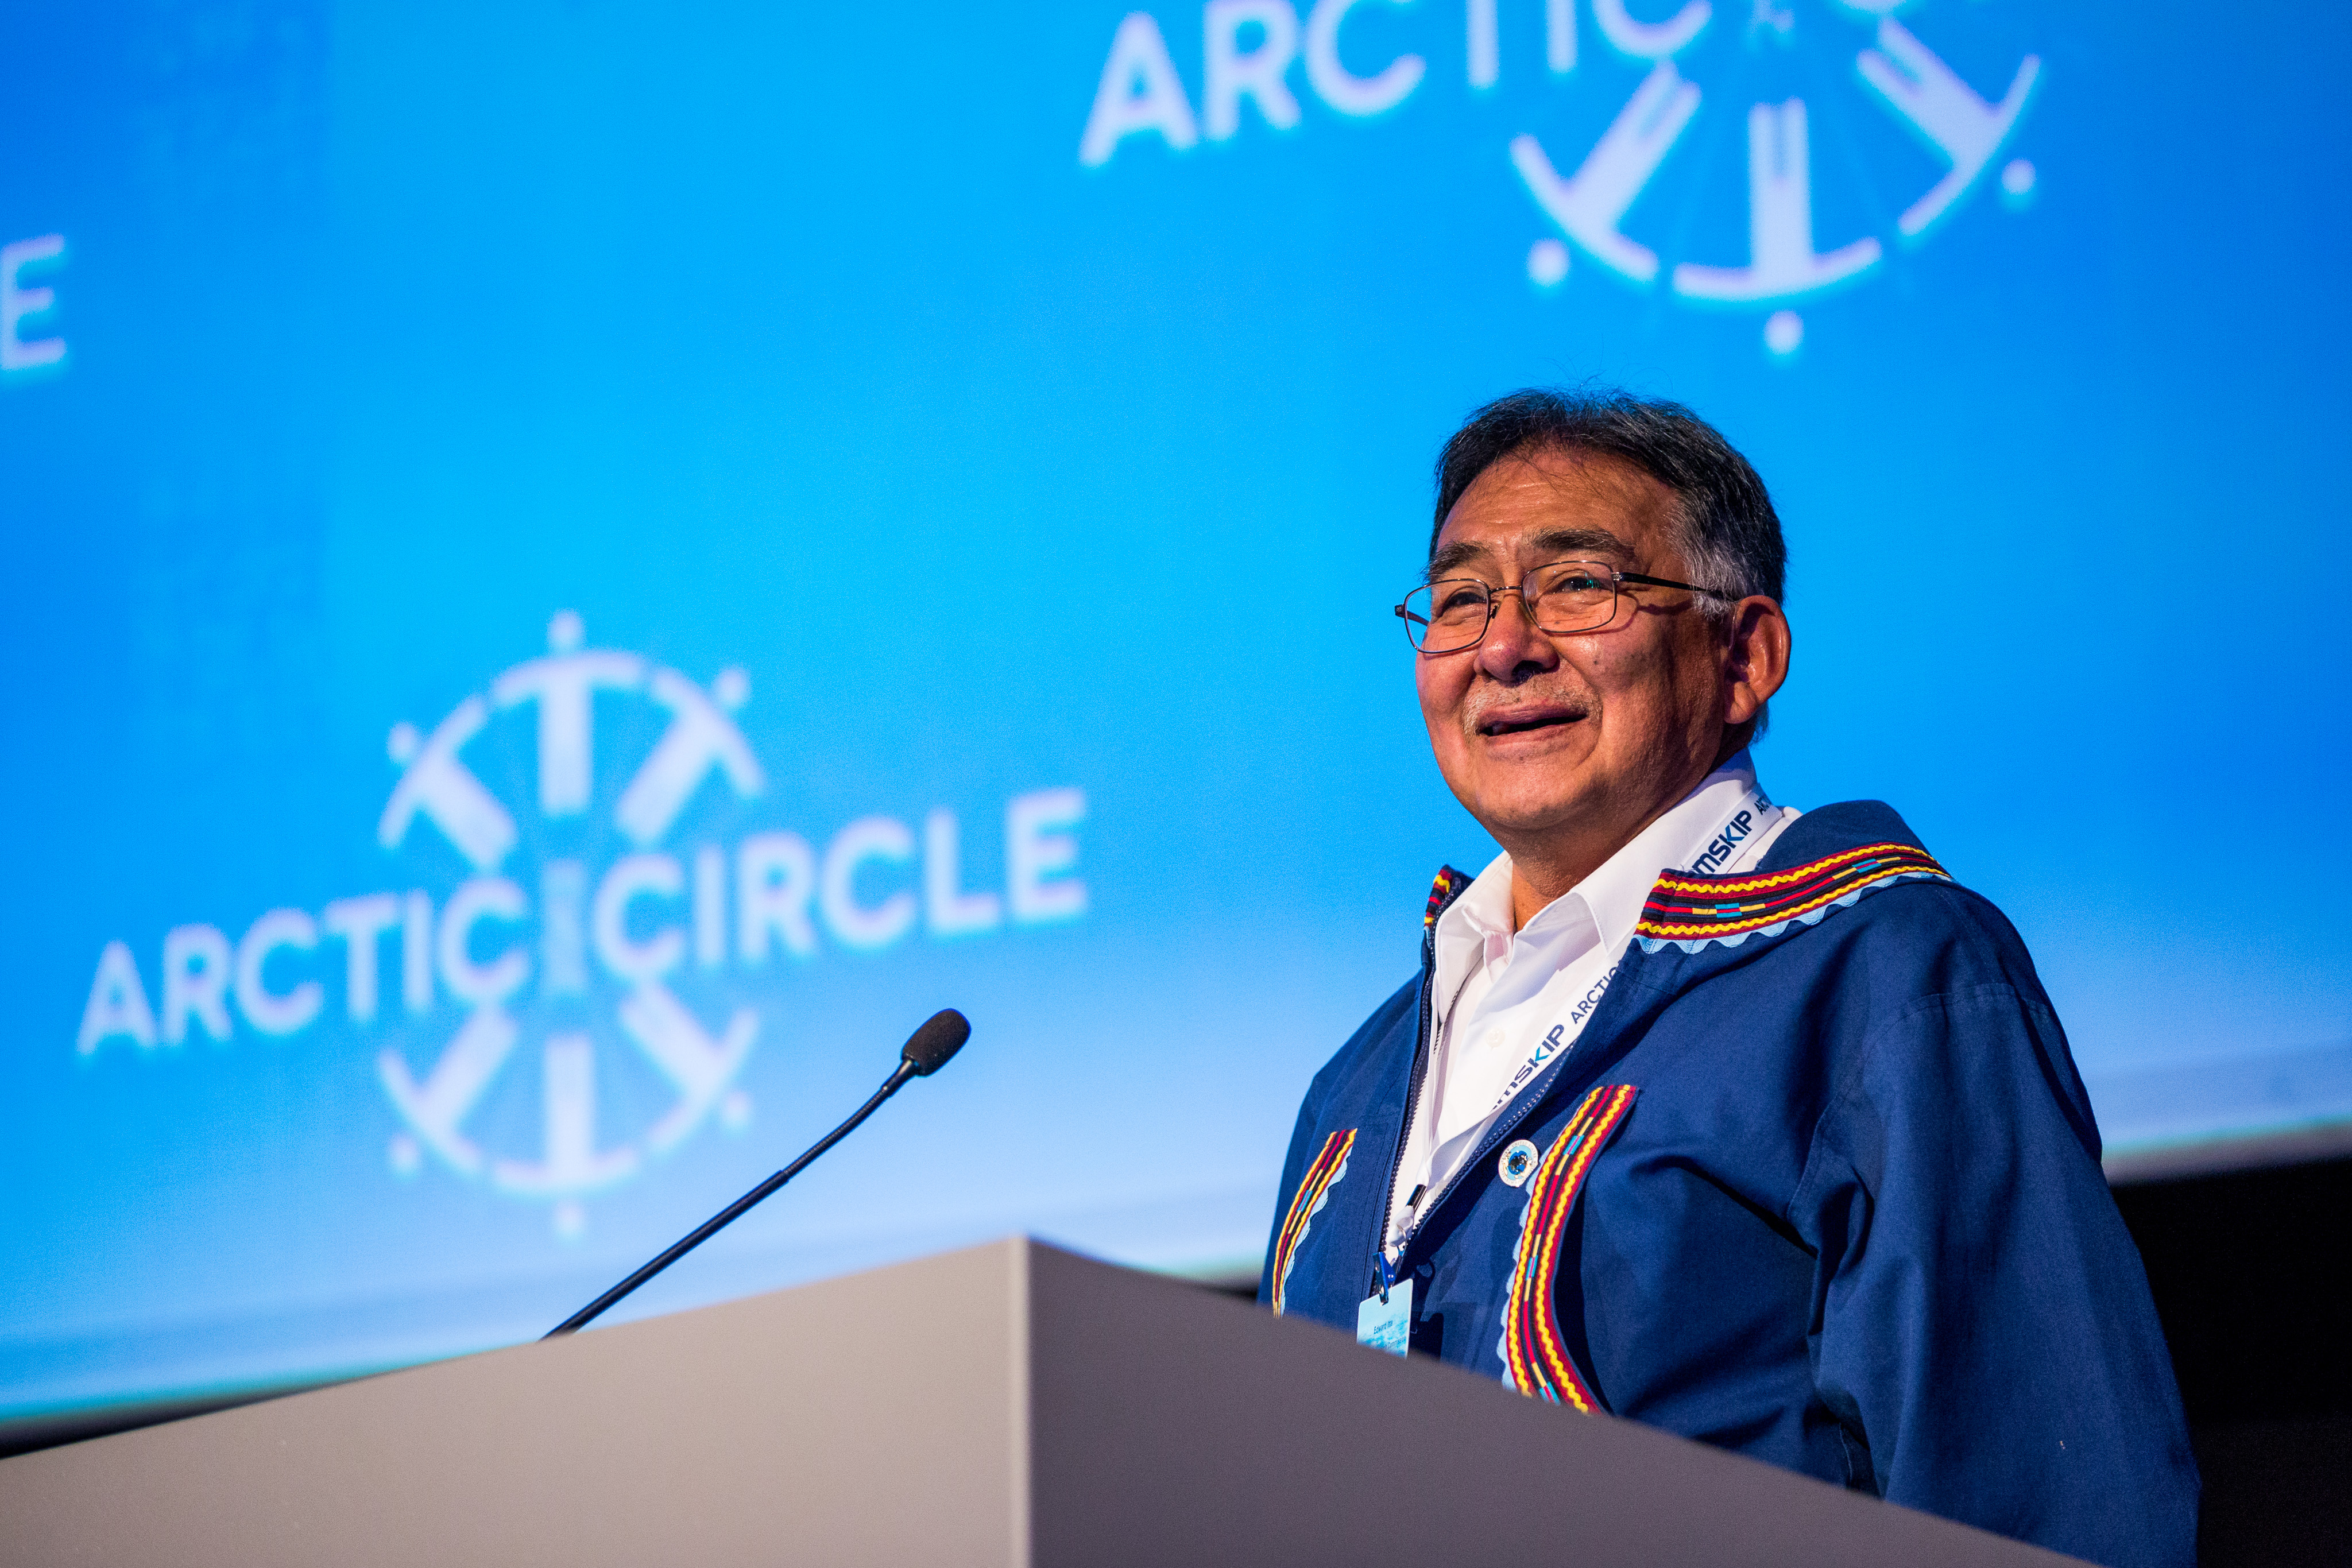 Tributes pour into Alaska for North Slope leader Itta